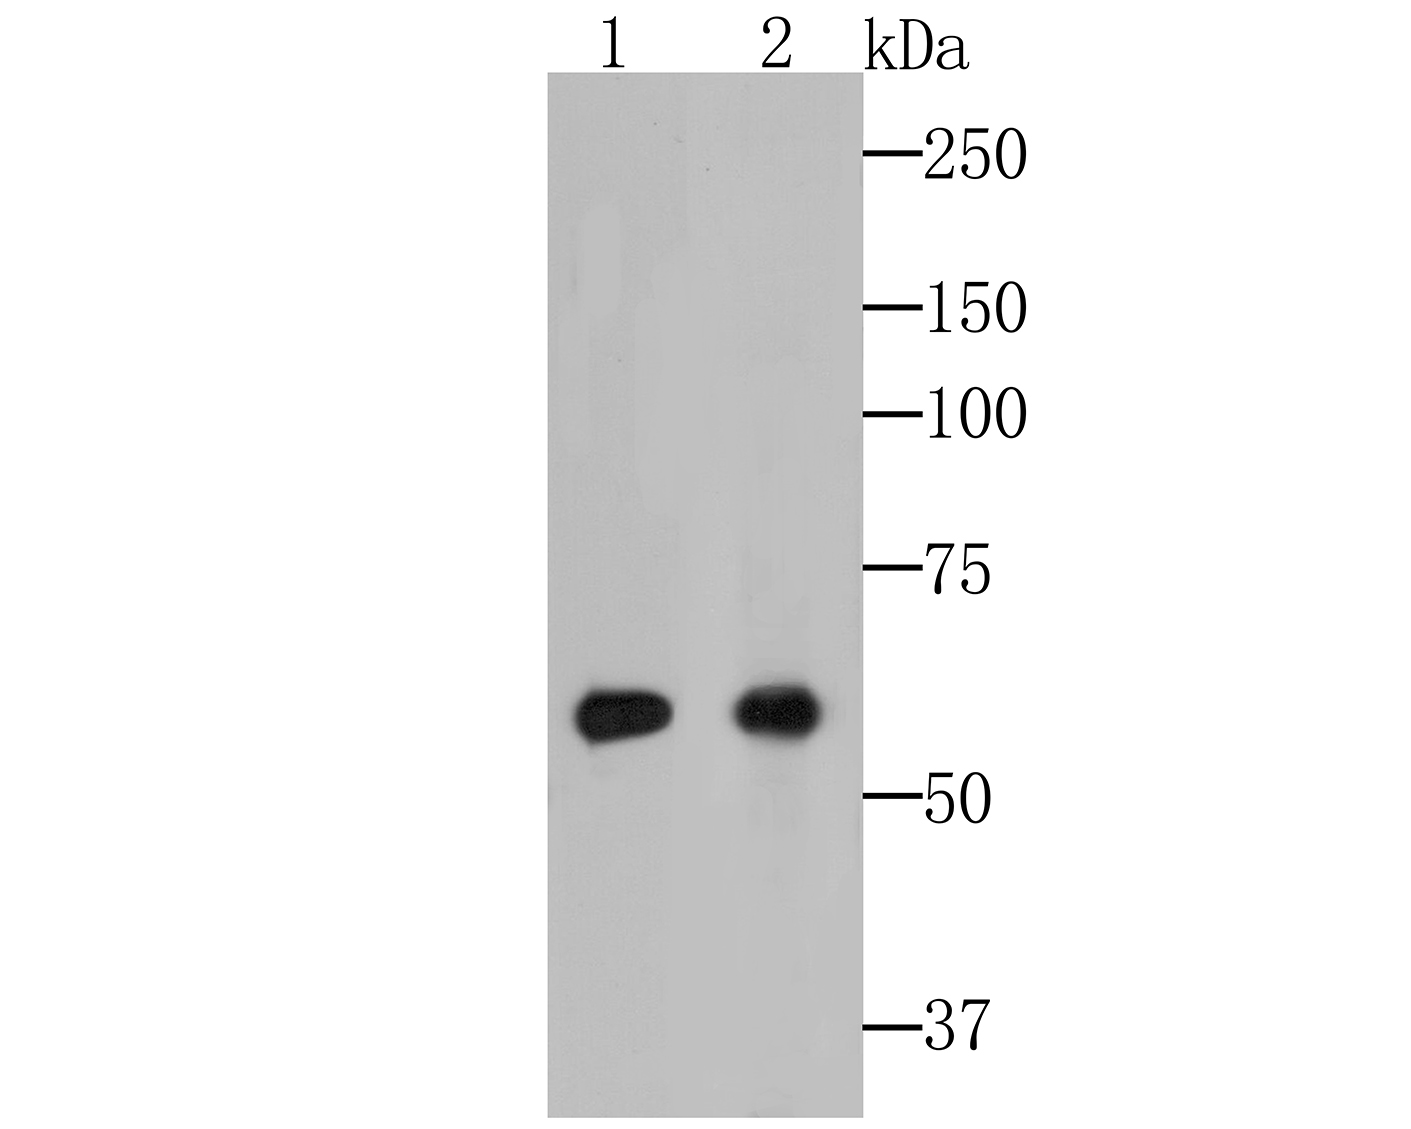 Western blot analysis of Cytokeratin 5+6 on different lysates. Proteins were transferred to a PVDF membrane and blocked with 5% BSA in PBS for 1 hour at room temperature. The primary antibody (EM1901-07, 1/100) was used in 5% BSA at room temperature for 2 hours. Goat Anti-Mouse IgG - HRP Secondary Antibody (HA1006) at 1:5,000 dilution was used for 1 hour at room temperature.<br />  Positive control: <br />  Lane 1: HT-29 cell lysate<br />  Lane 2: Human skin tissue lysate